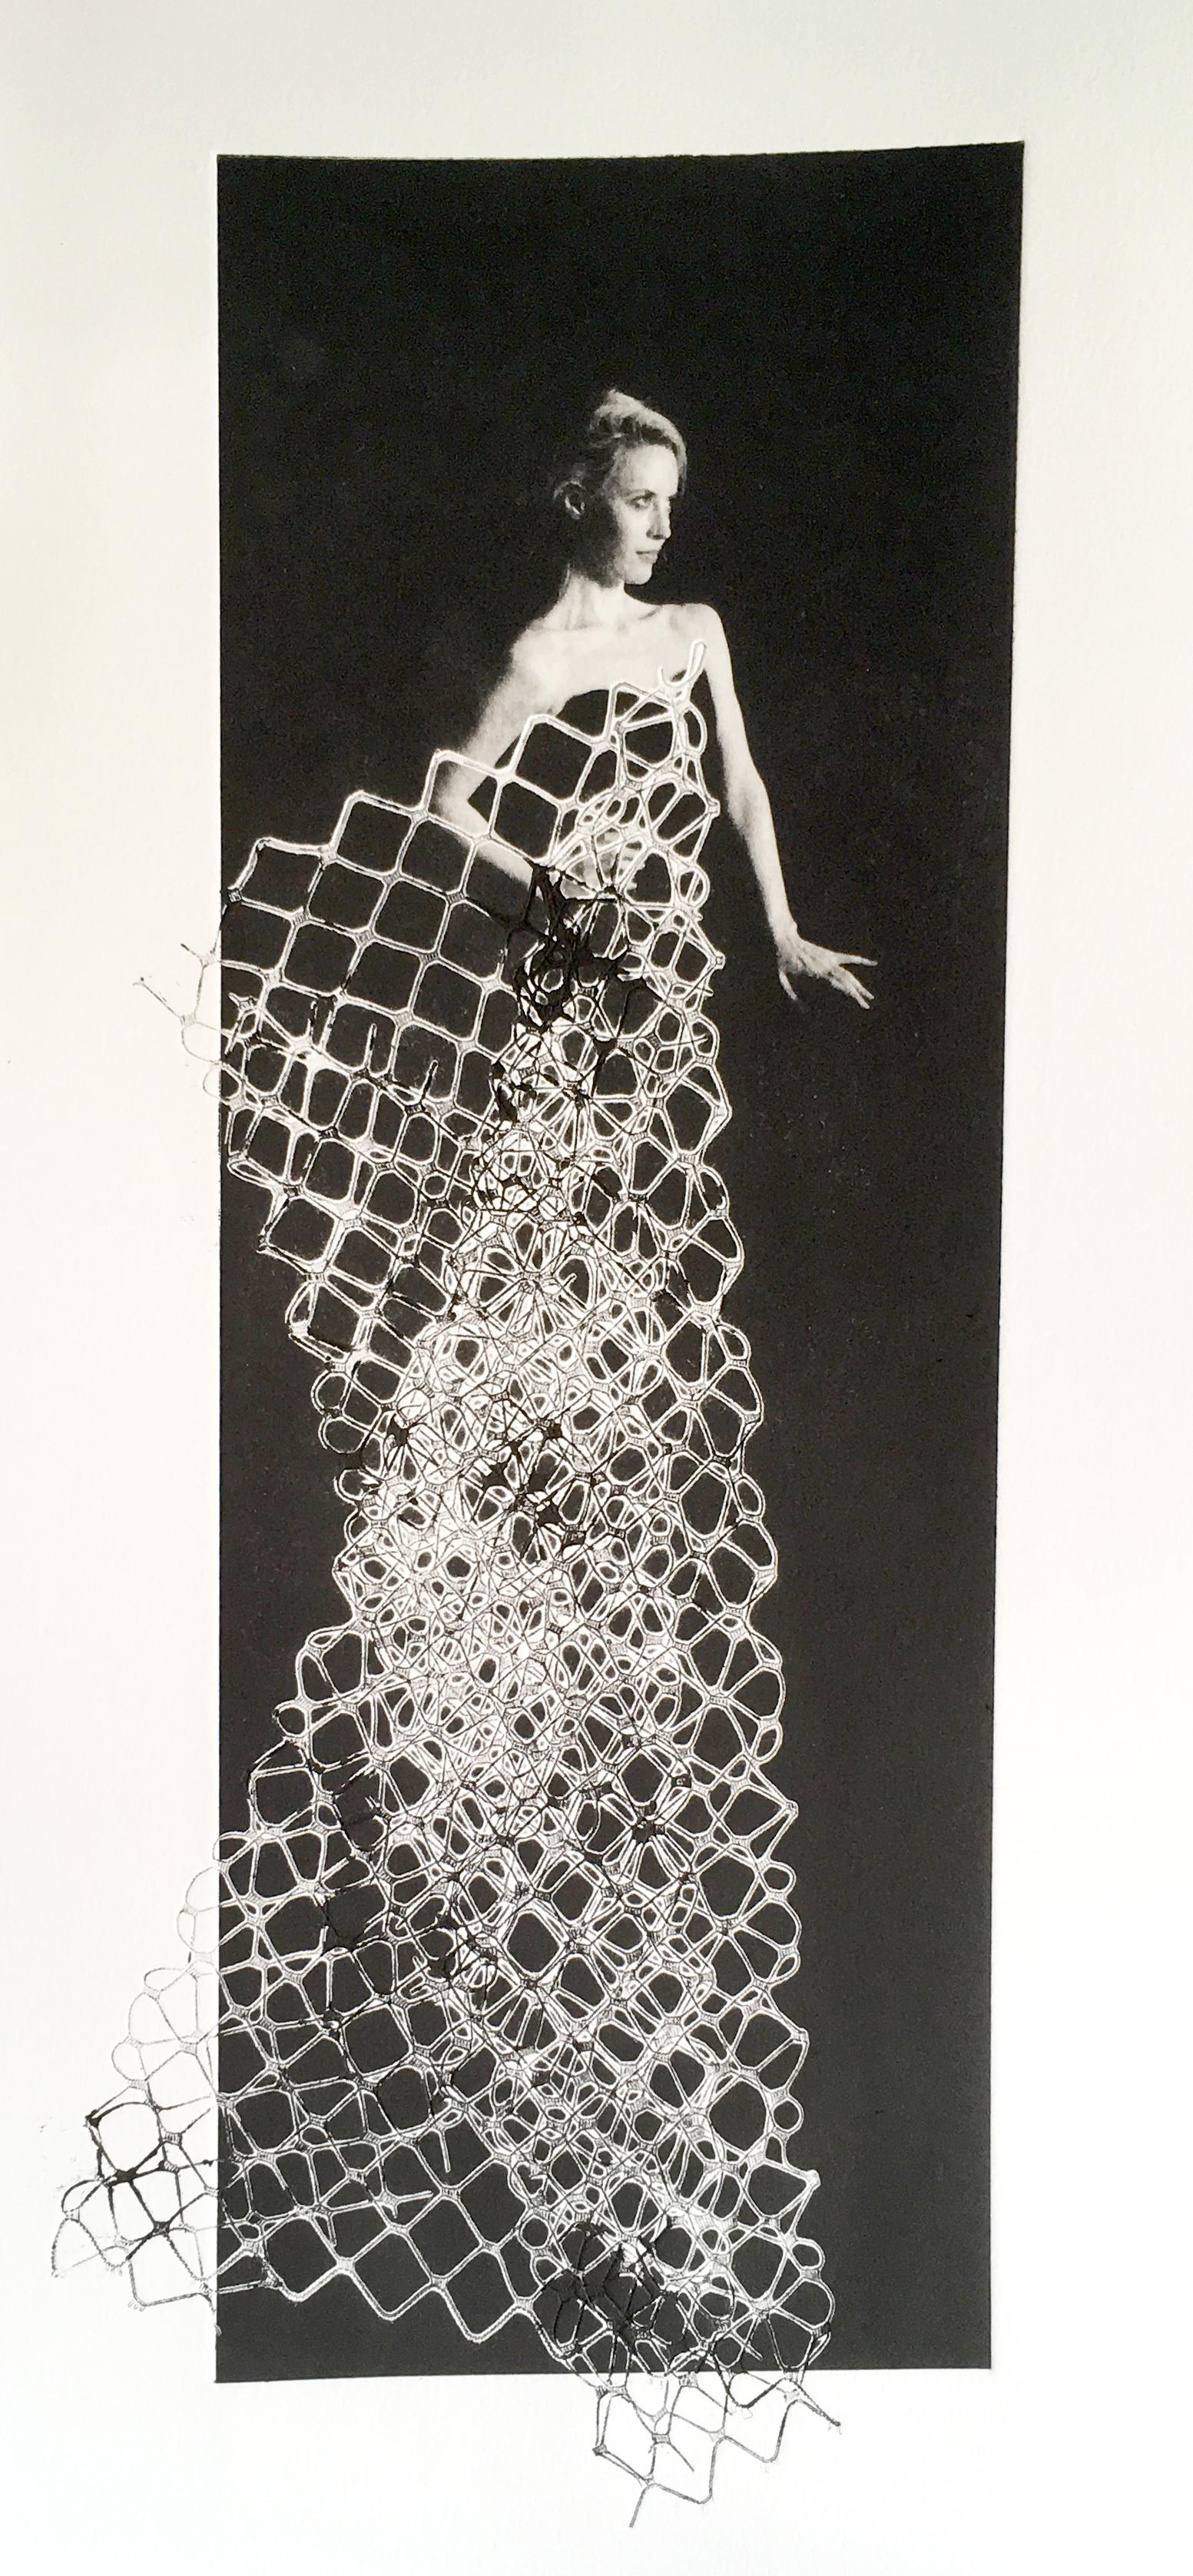 Moda by Rosie Emerson, Black and white analogue photography, glam female figure